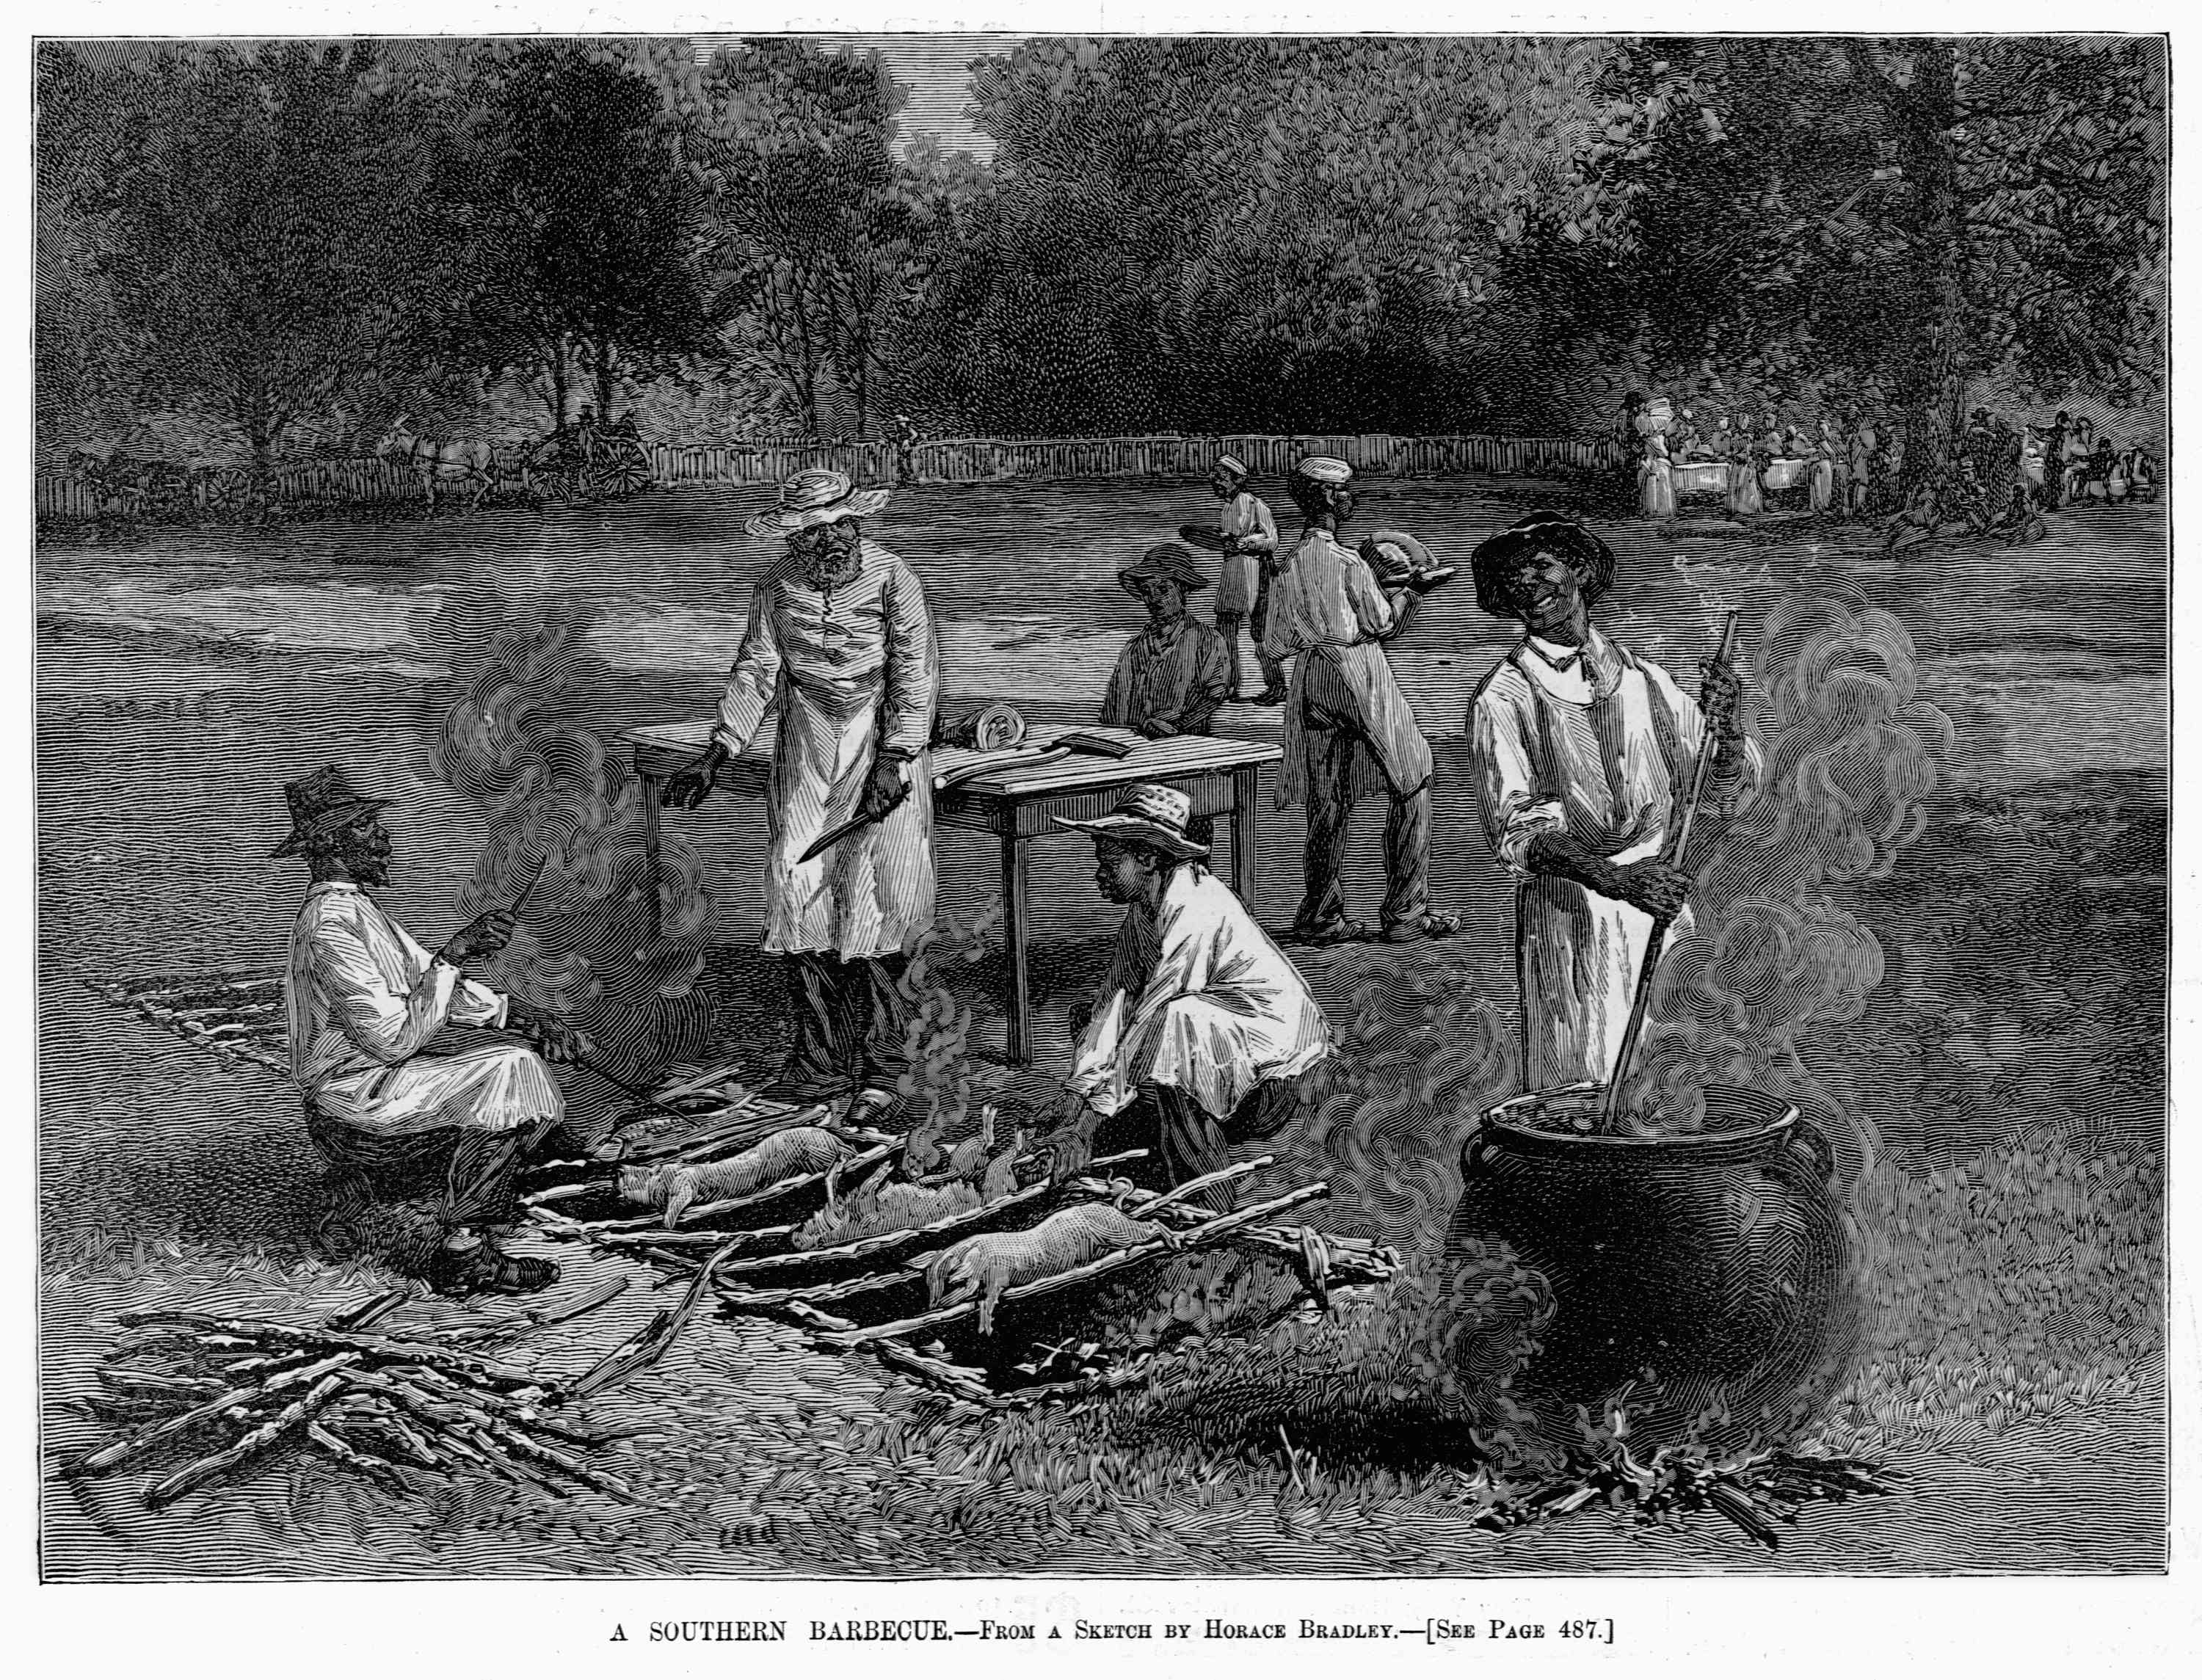 Southern barbecue engraving